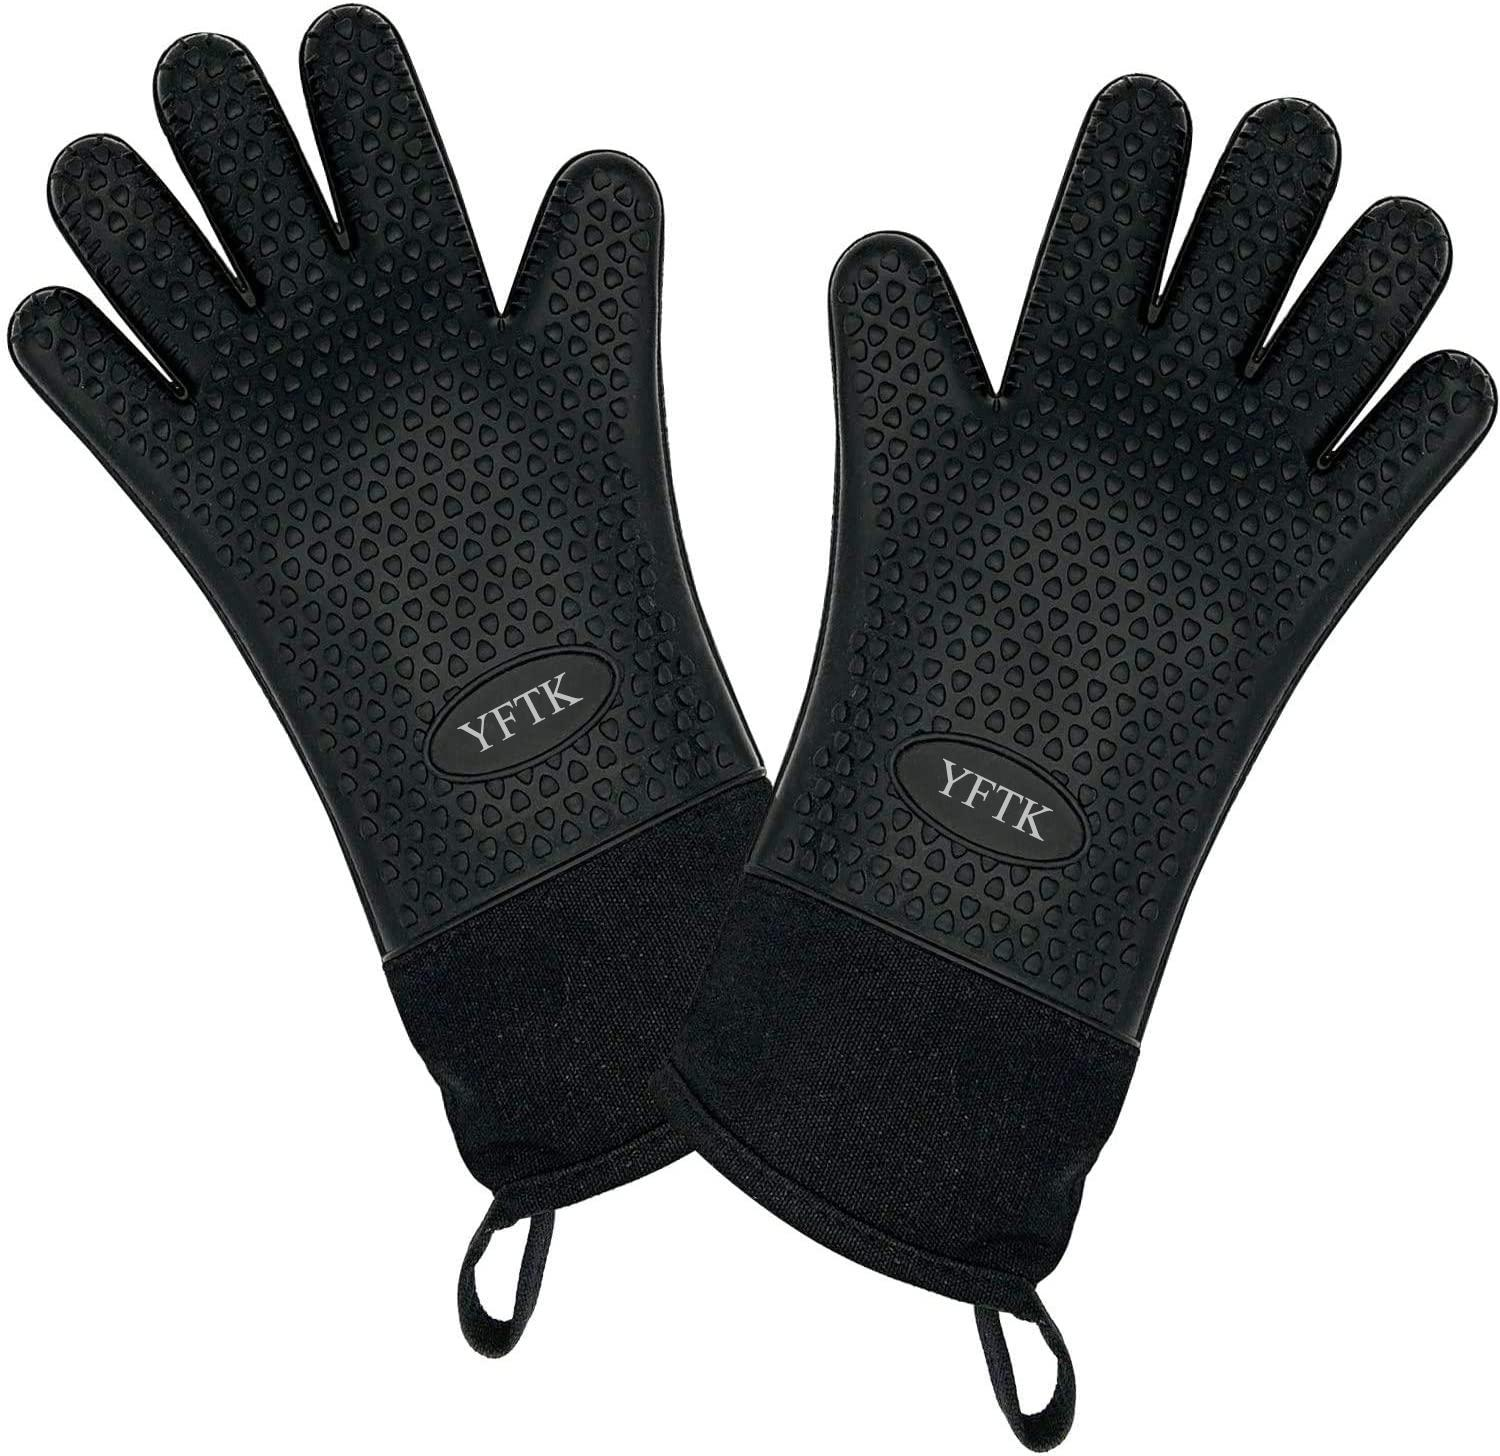 YFTK Barbecue Mitts BBQ Grill and Cooking Gloves - Heat Resistant & Long Waterproof Non-Slip Potholders Set for Barbecue, Roasting, Grilling and Baking